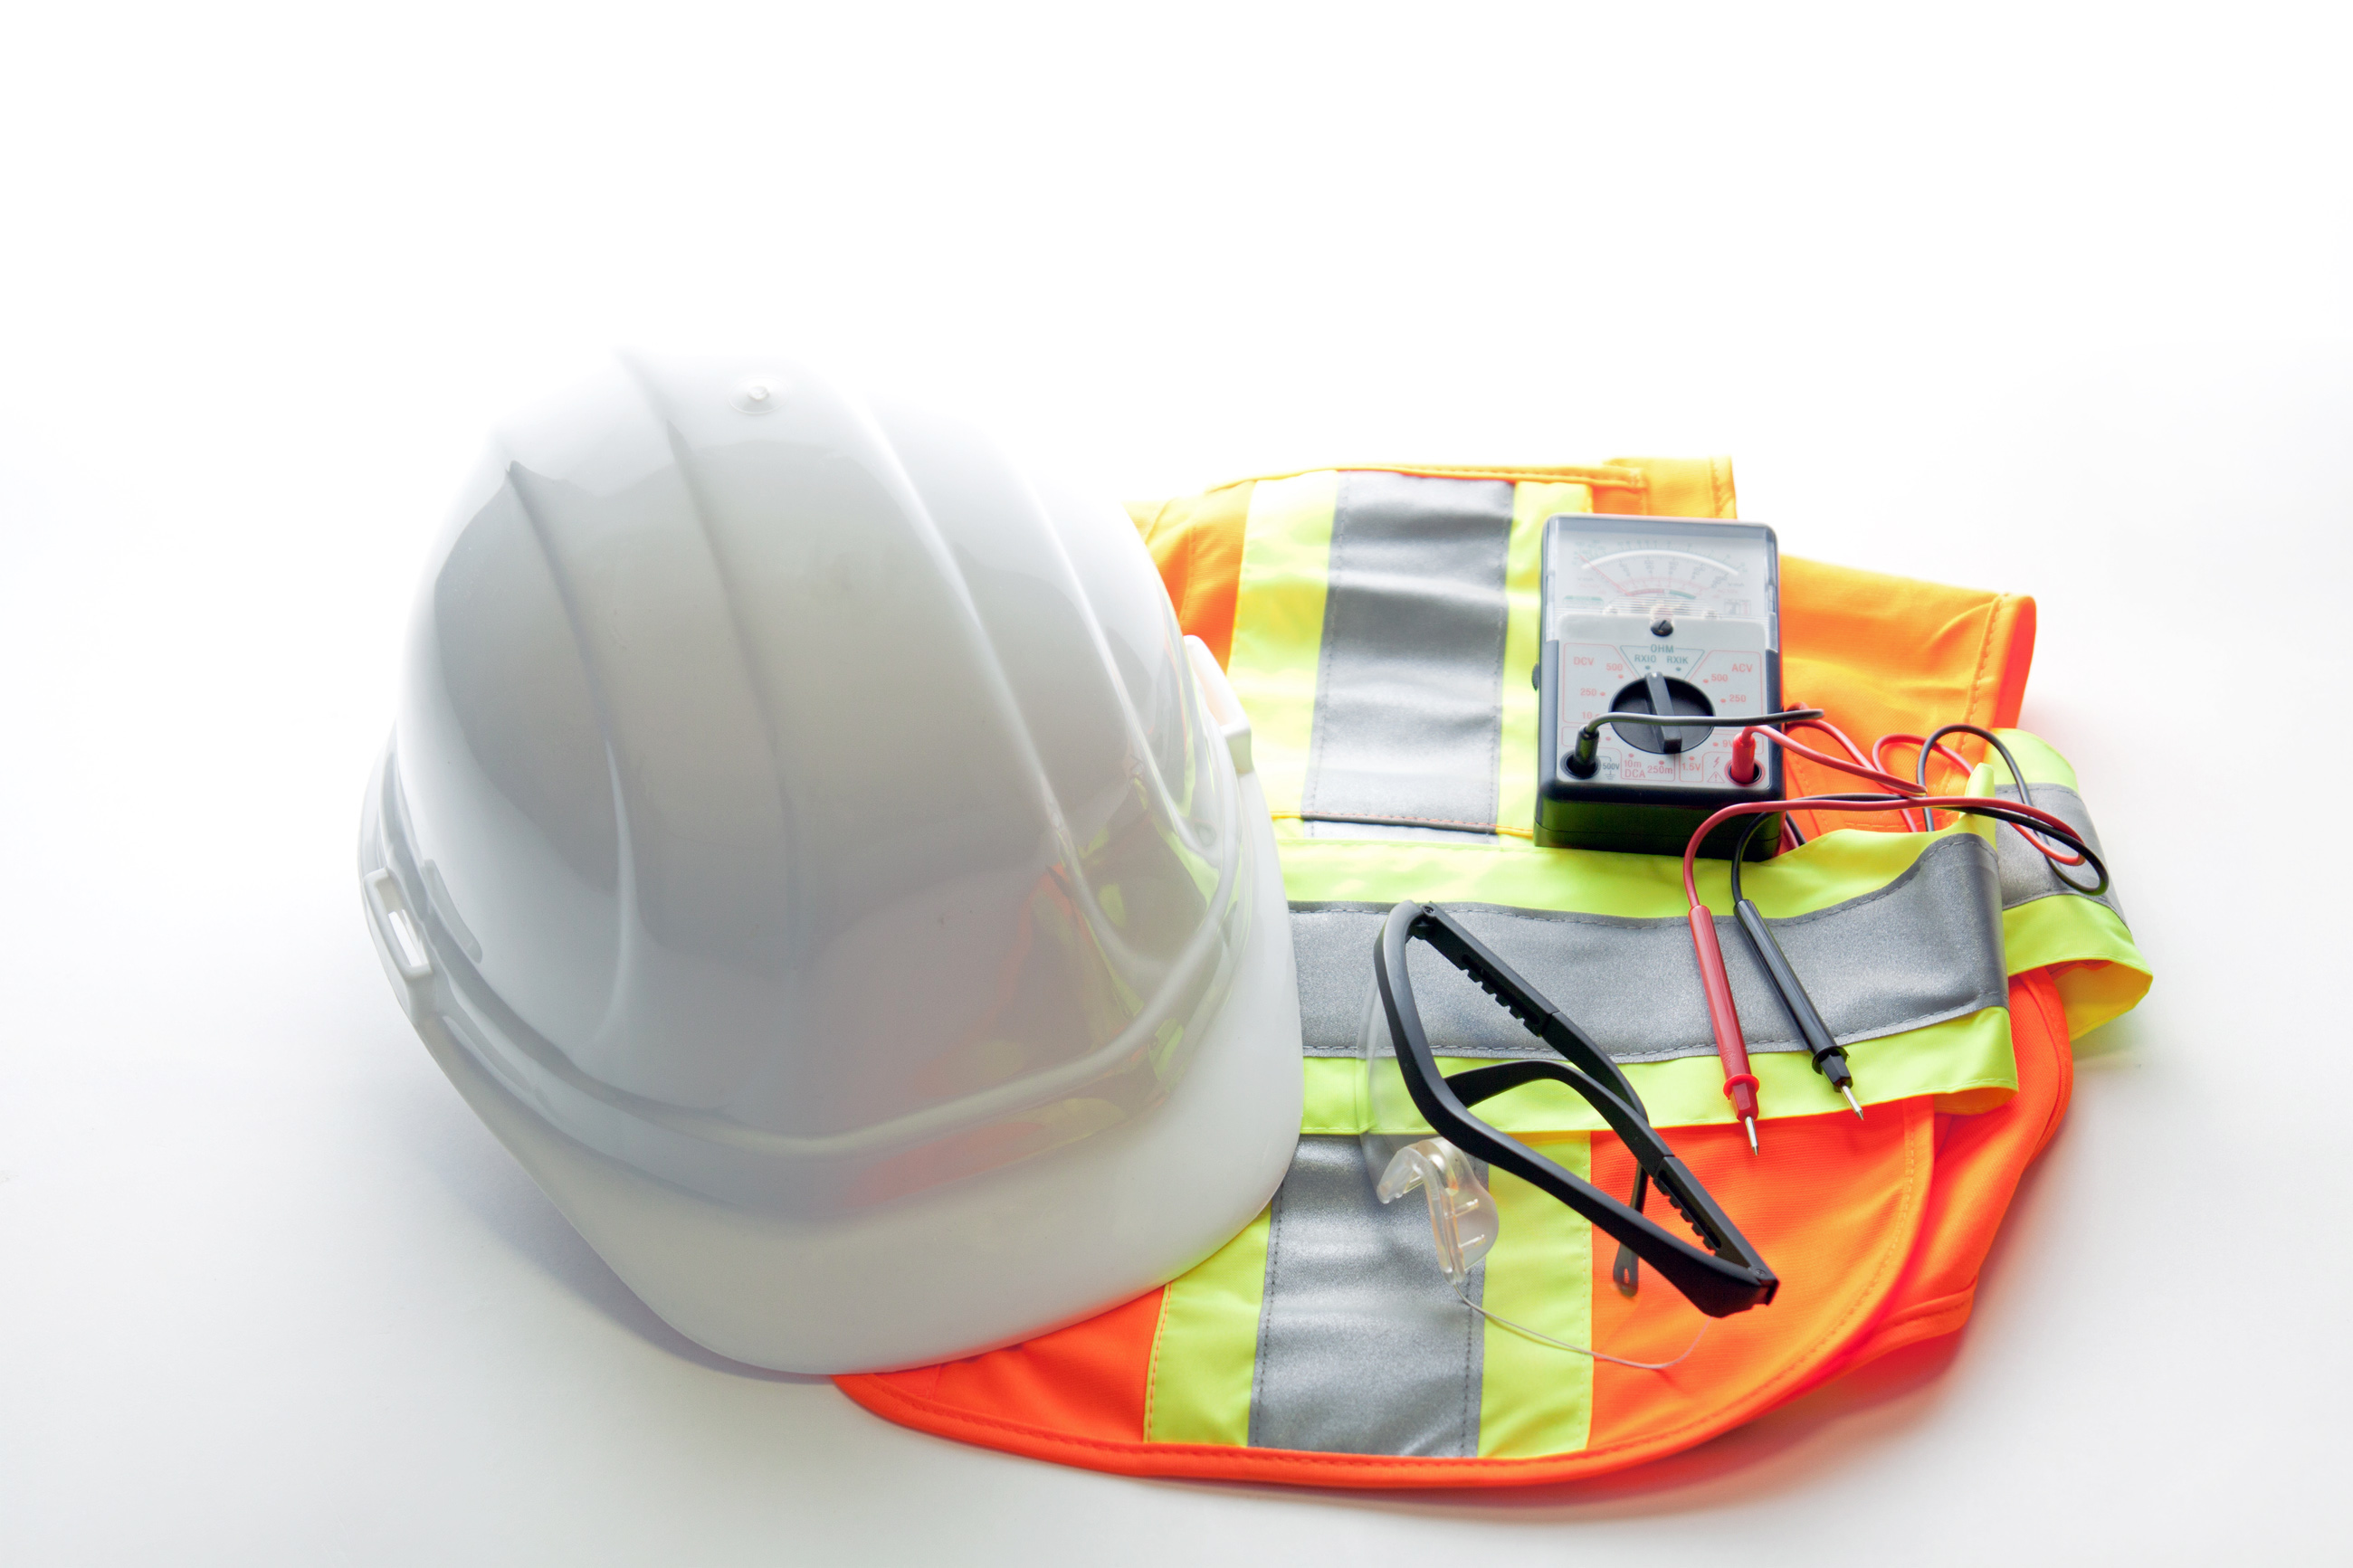 Electrical safety with meter, hard hat, vest and glasses.